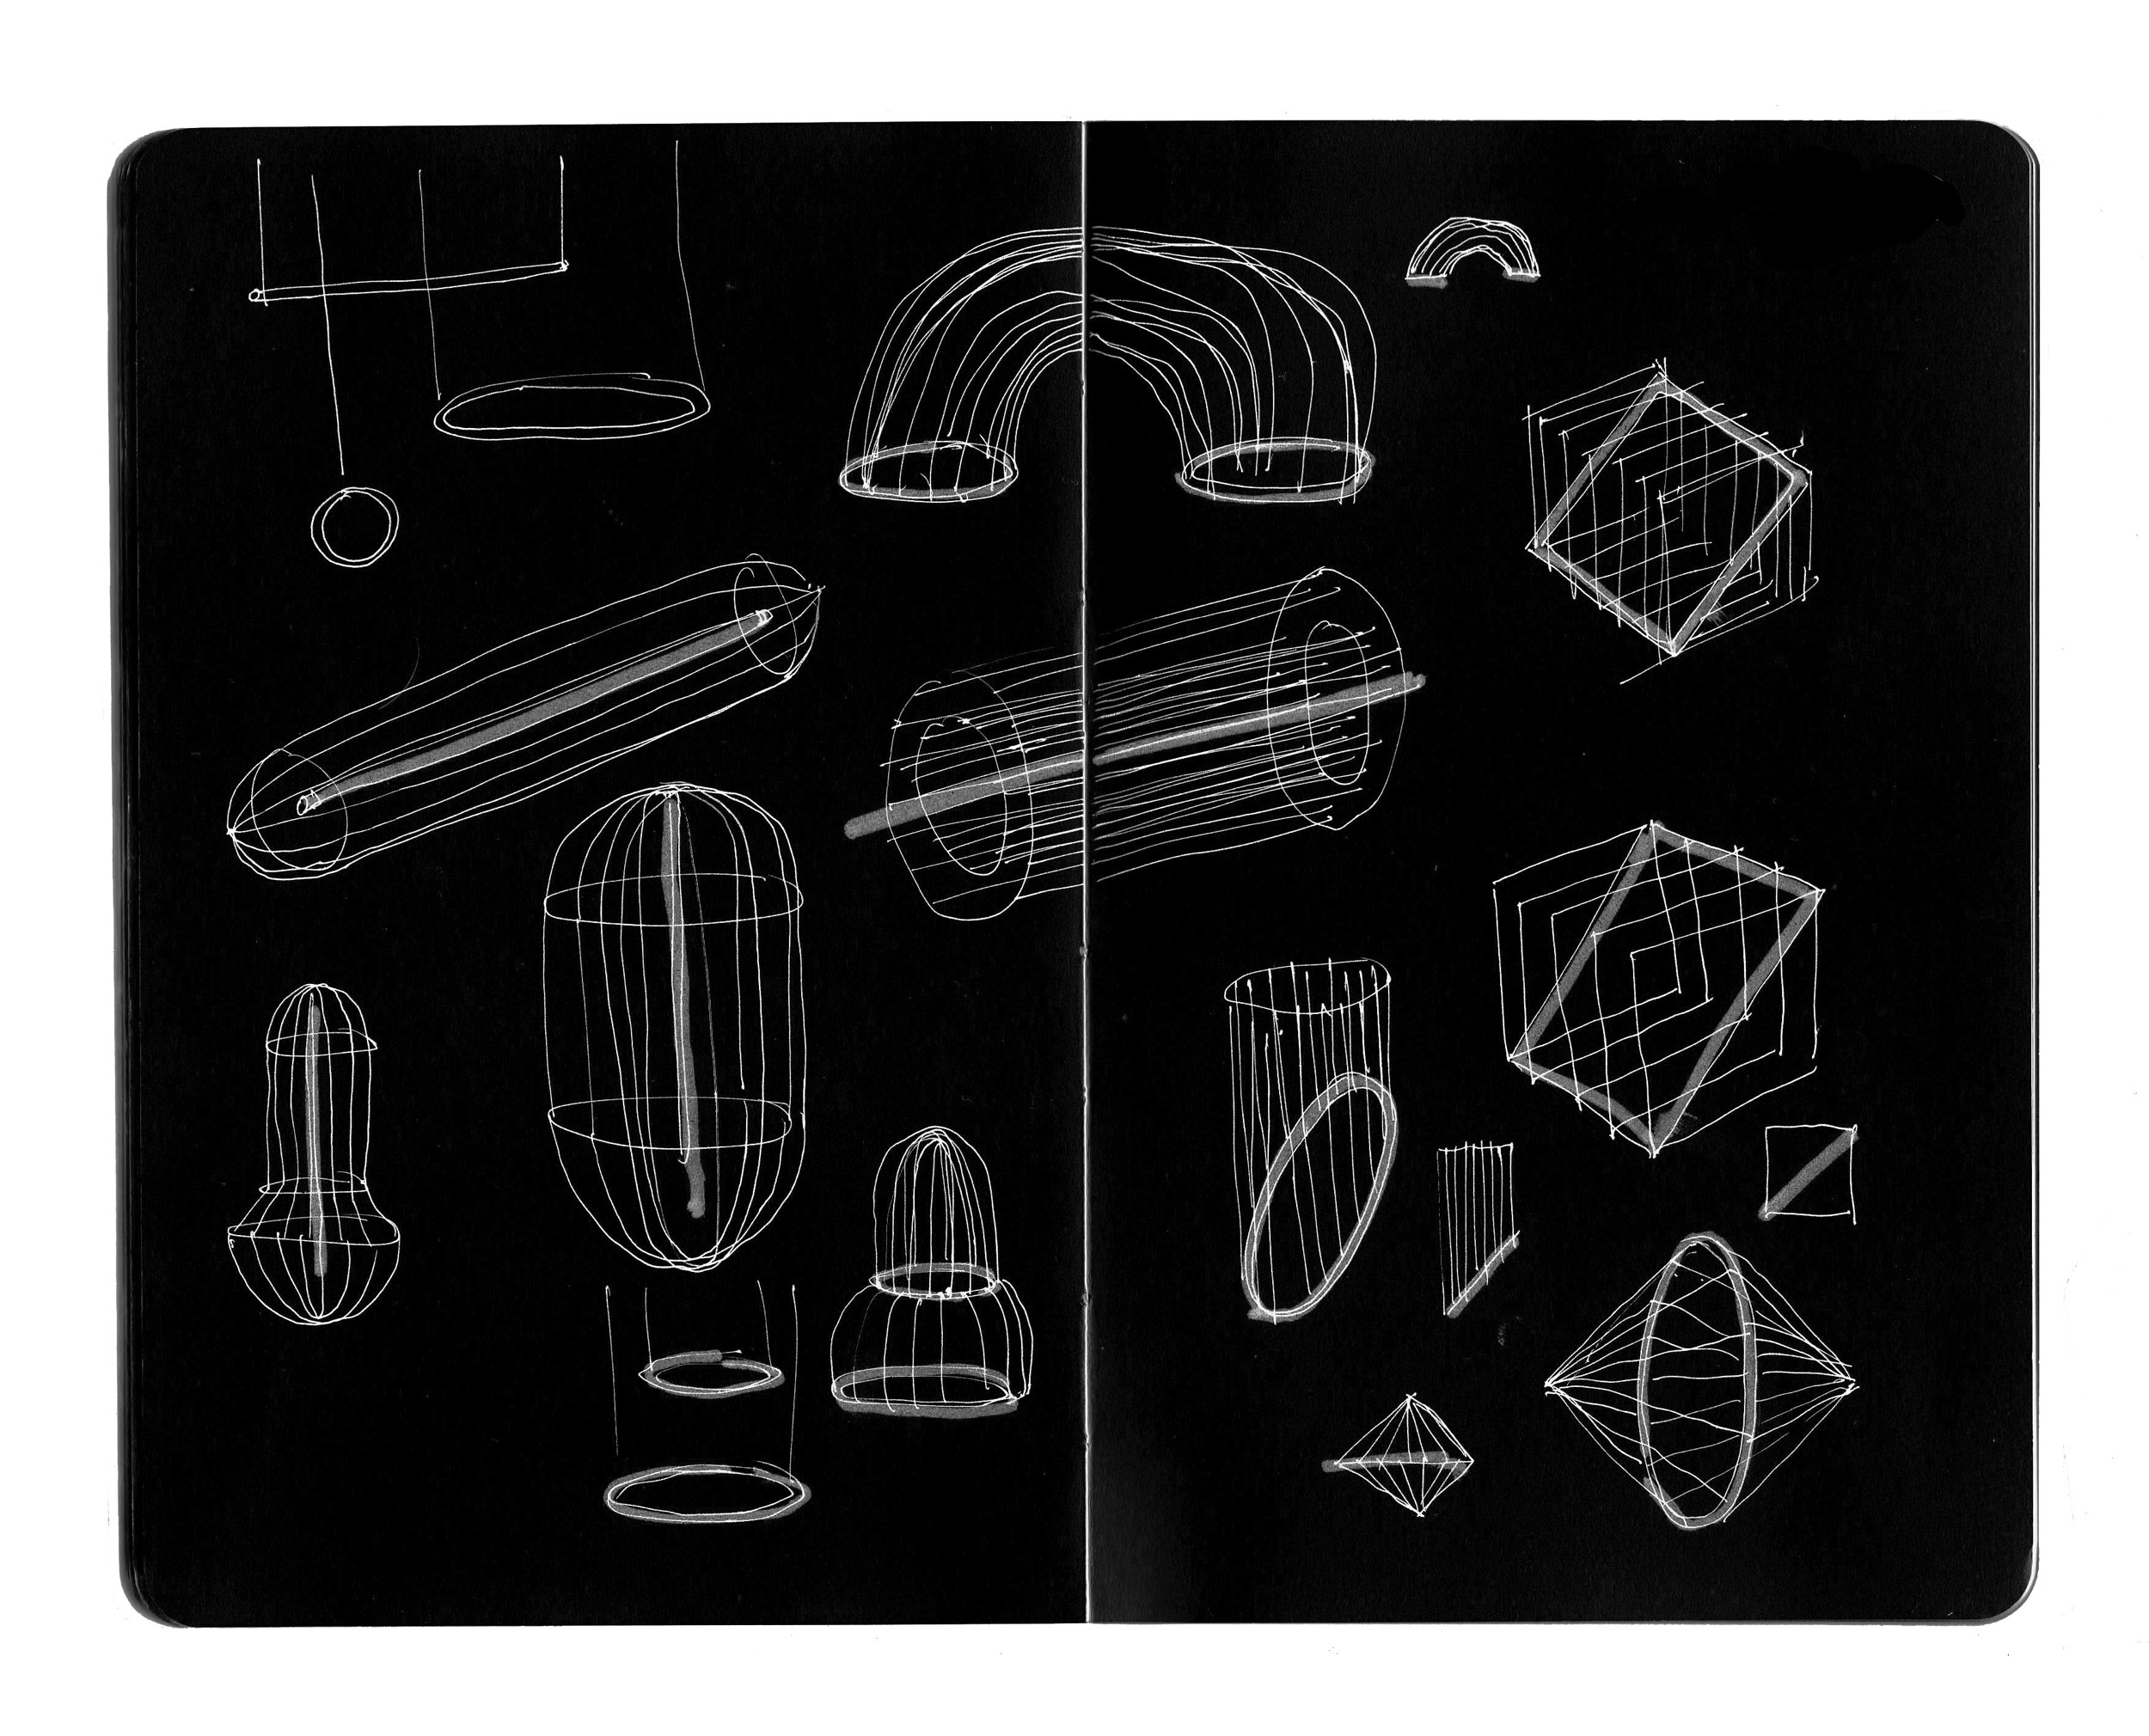 A sketch of Luminaries showing different ideas for wireframe and neon combinations